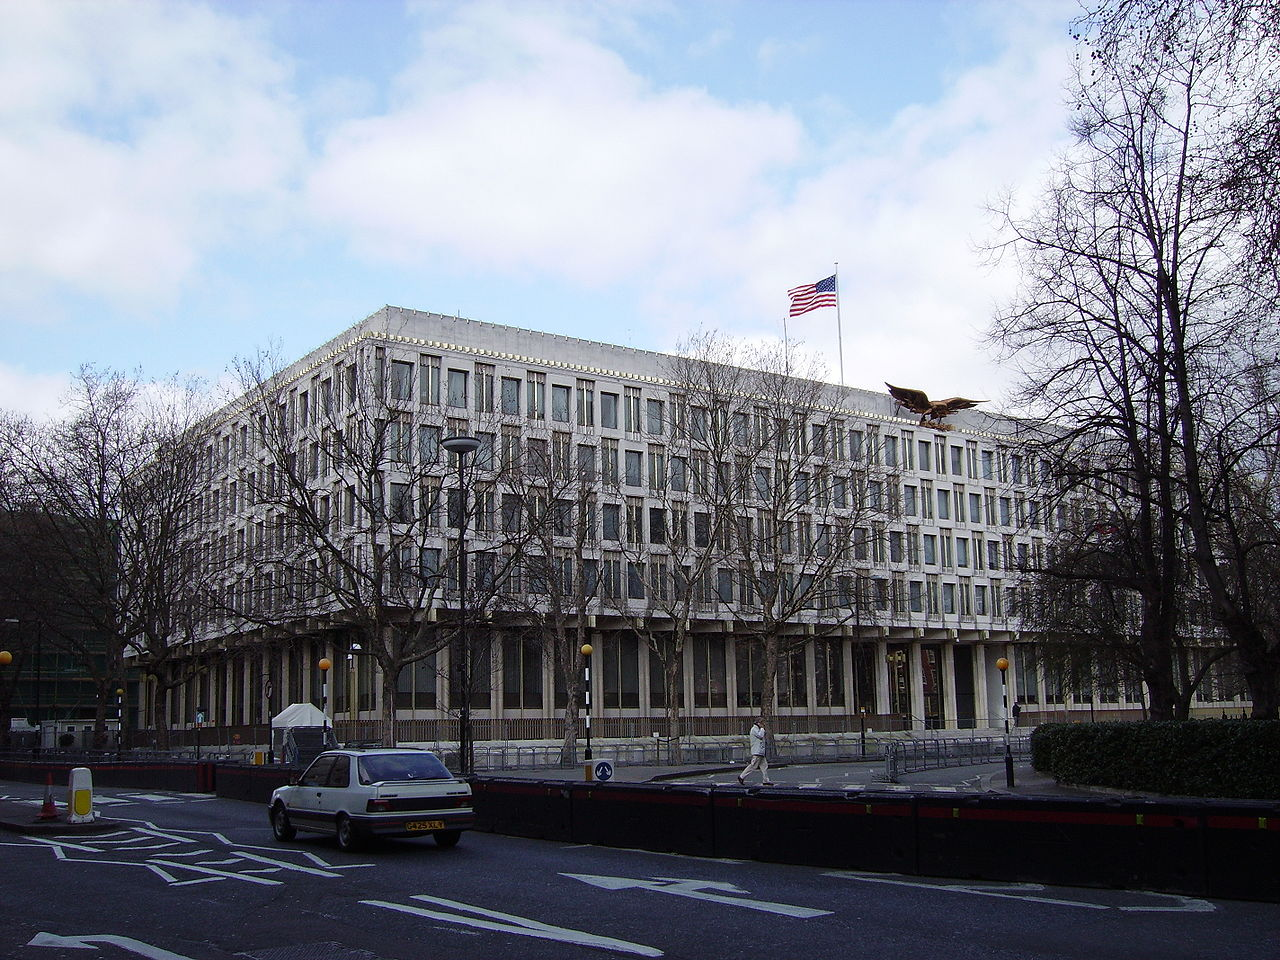 1280px-US_Embassy_London_view_from_SE